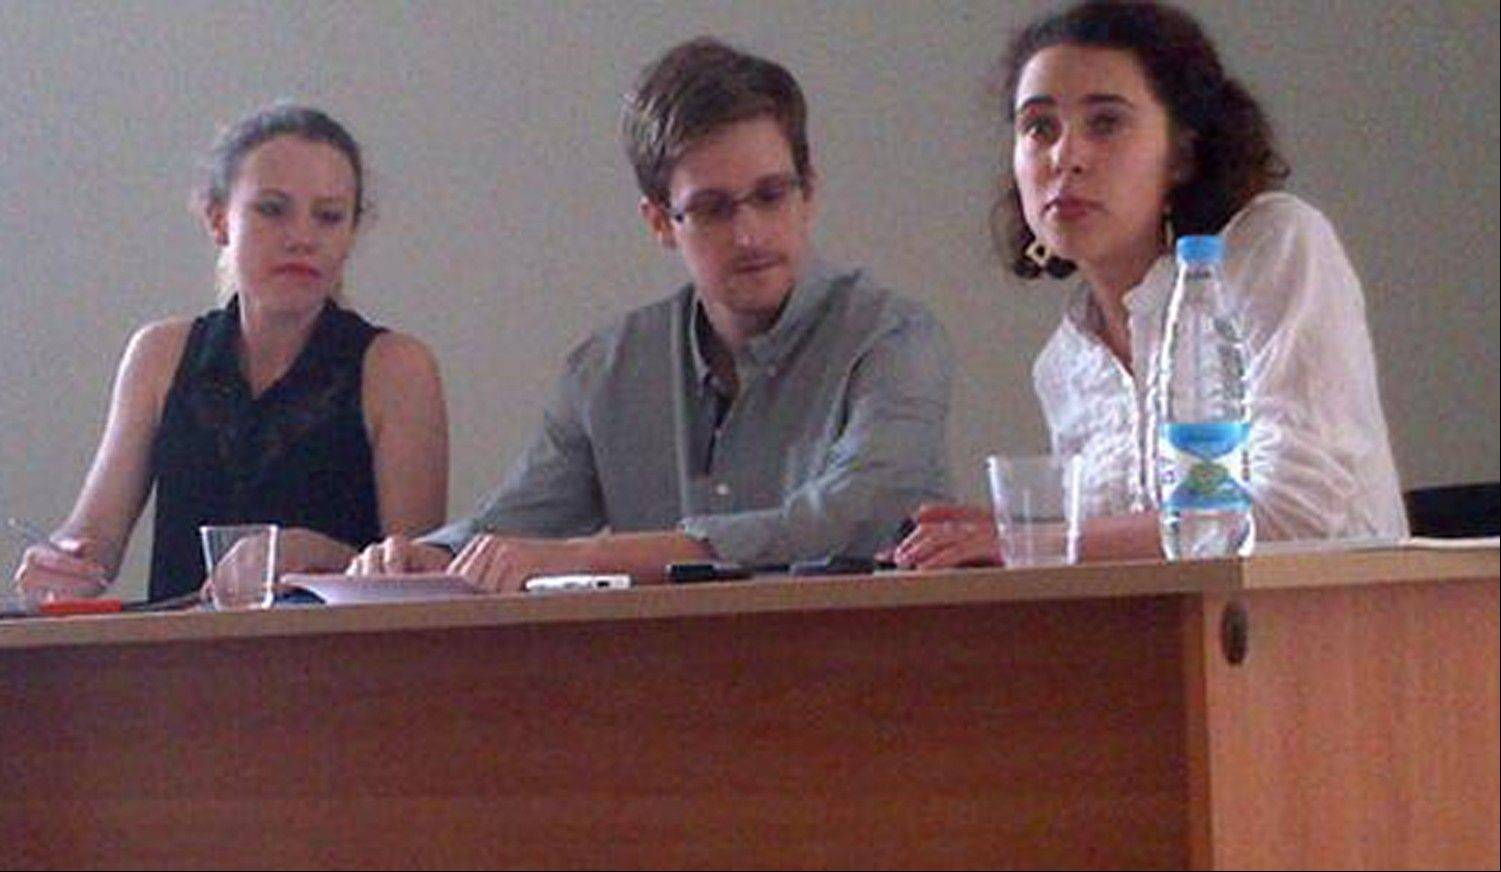 National Security Agency leaker Edward Snowden has asked for a temporary asylum in Russia.